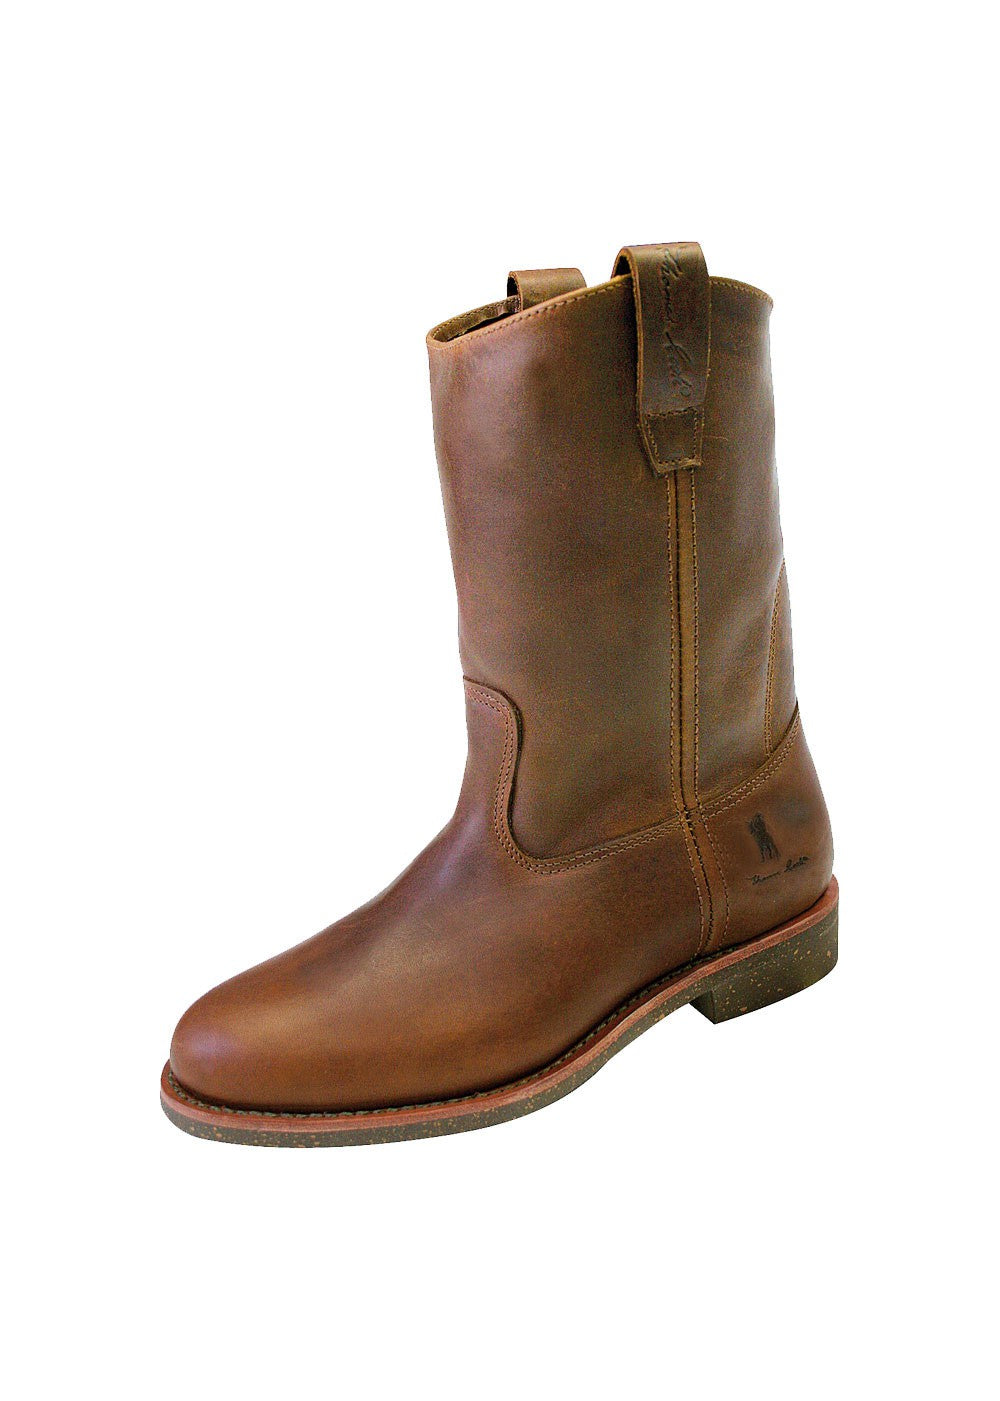 Thomas Cook | Mens | Boots | Toe Roper | Super Doggers | Brown Coachman - BK8 Outfitters Australia